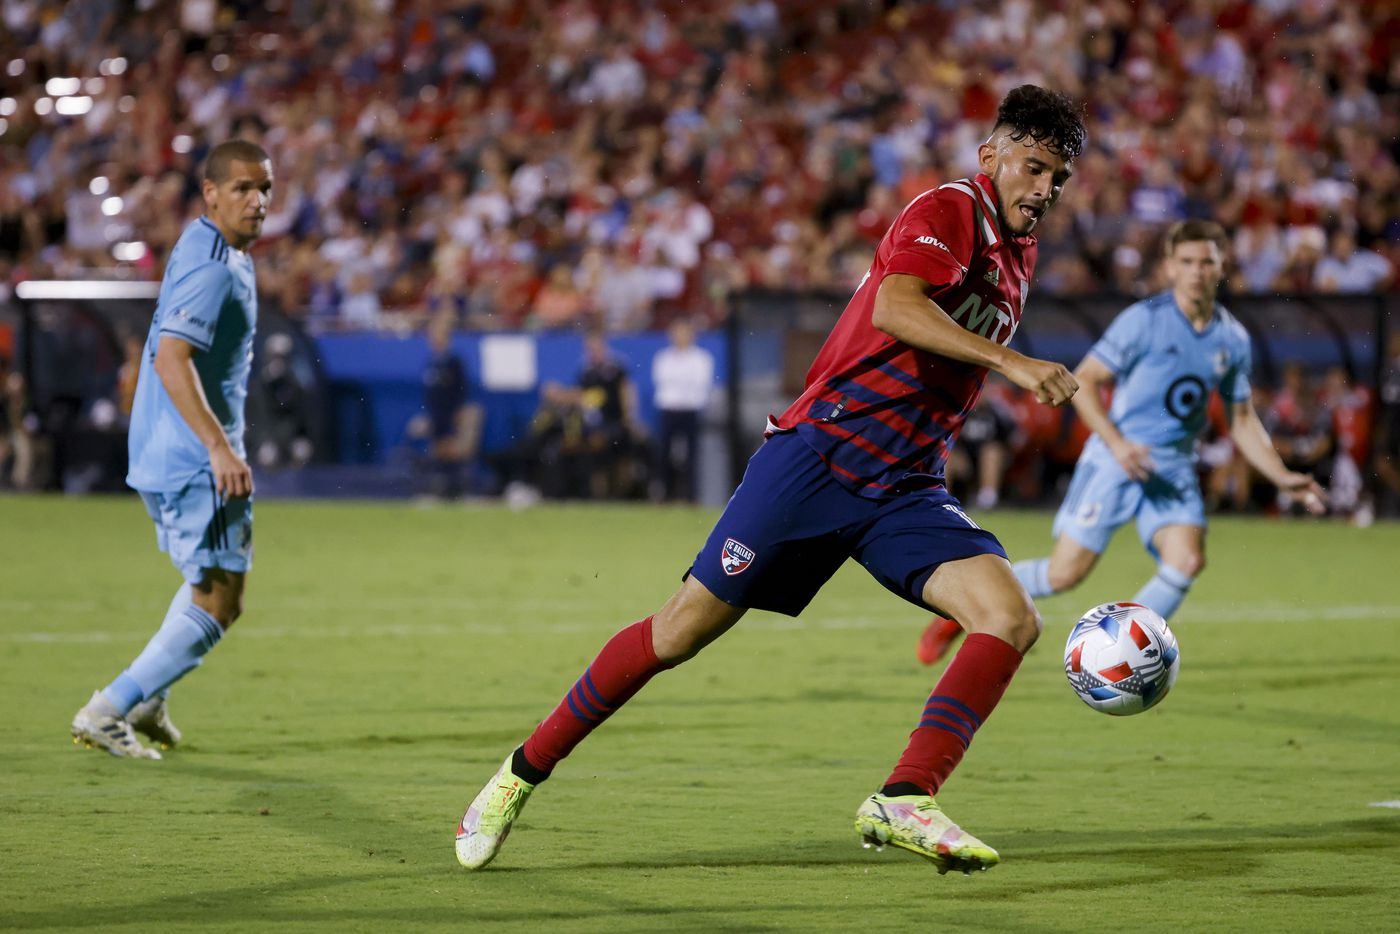 FC Dallas forward Ricardo Pepi (16) goes for a kick during the second half of a FC Dallas against Minnesota United game on Saturday, Oct. 2, 2021, at Toyota Stadium in Frisco. (Juan Figueroa/The Dallas Morning News)